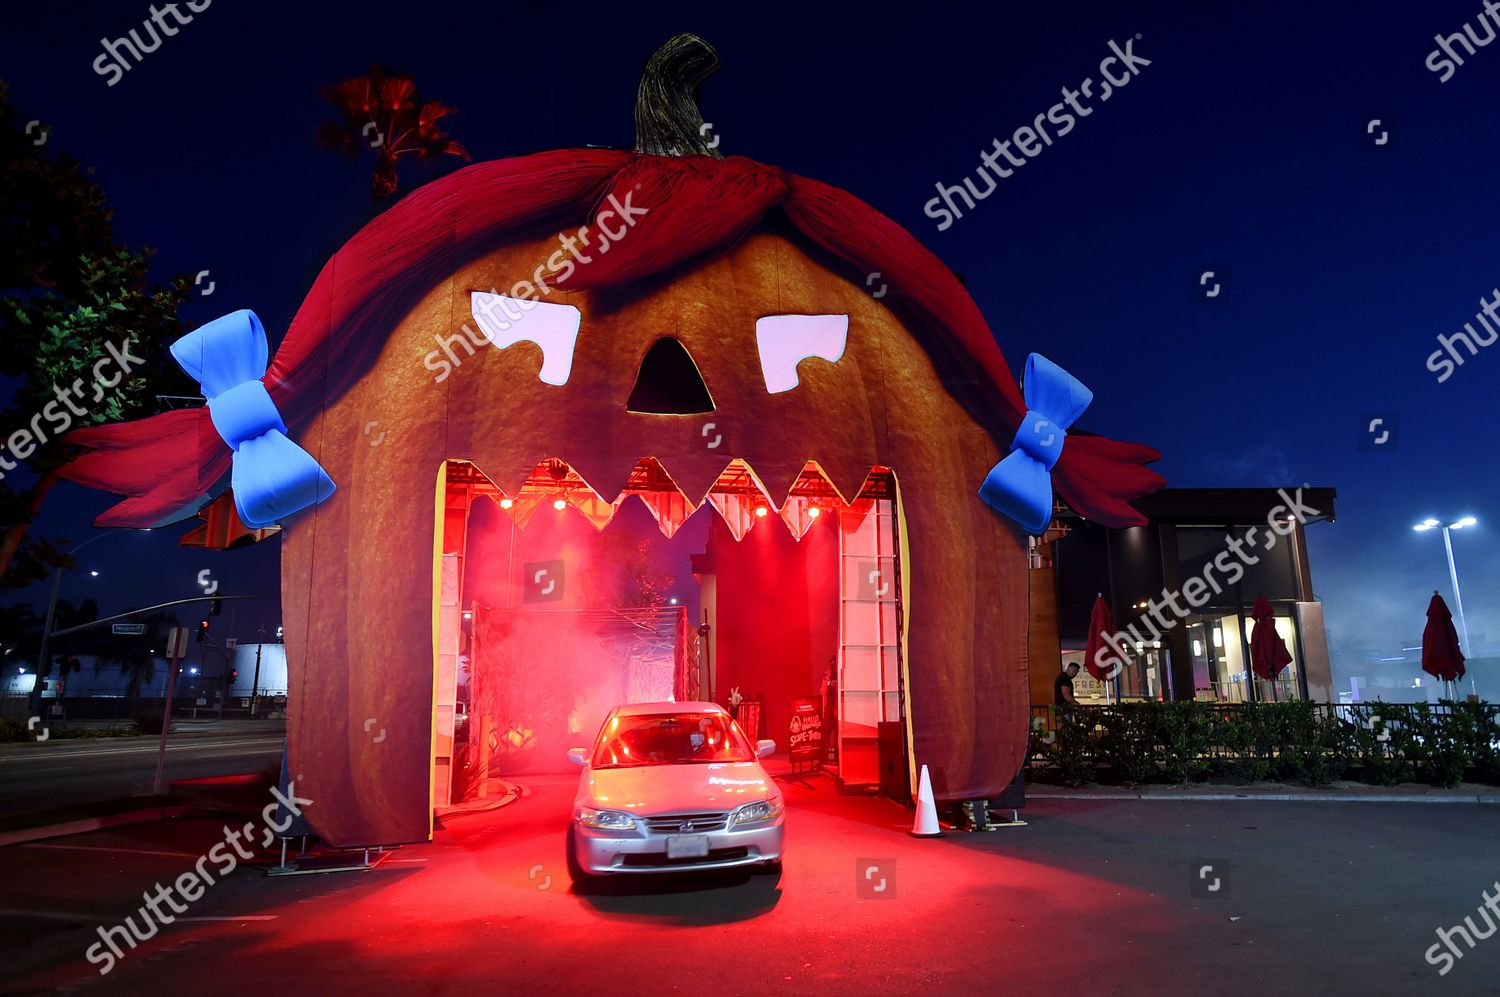 Wendys Christmas Evr Hours 2020 IMAGE DISTRIBUTED WENDYS Wendys celebrates Halloween firstever